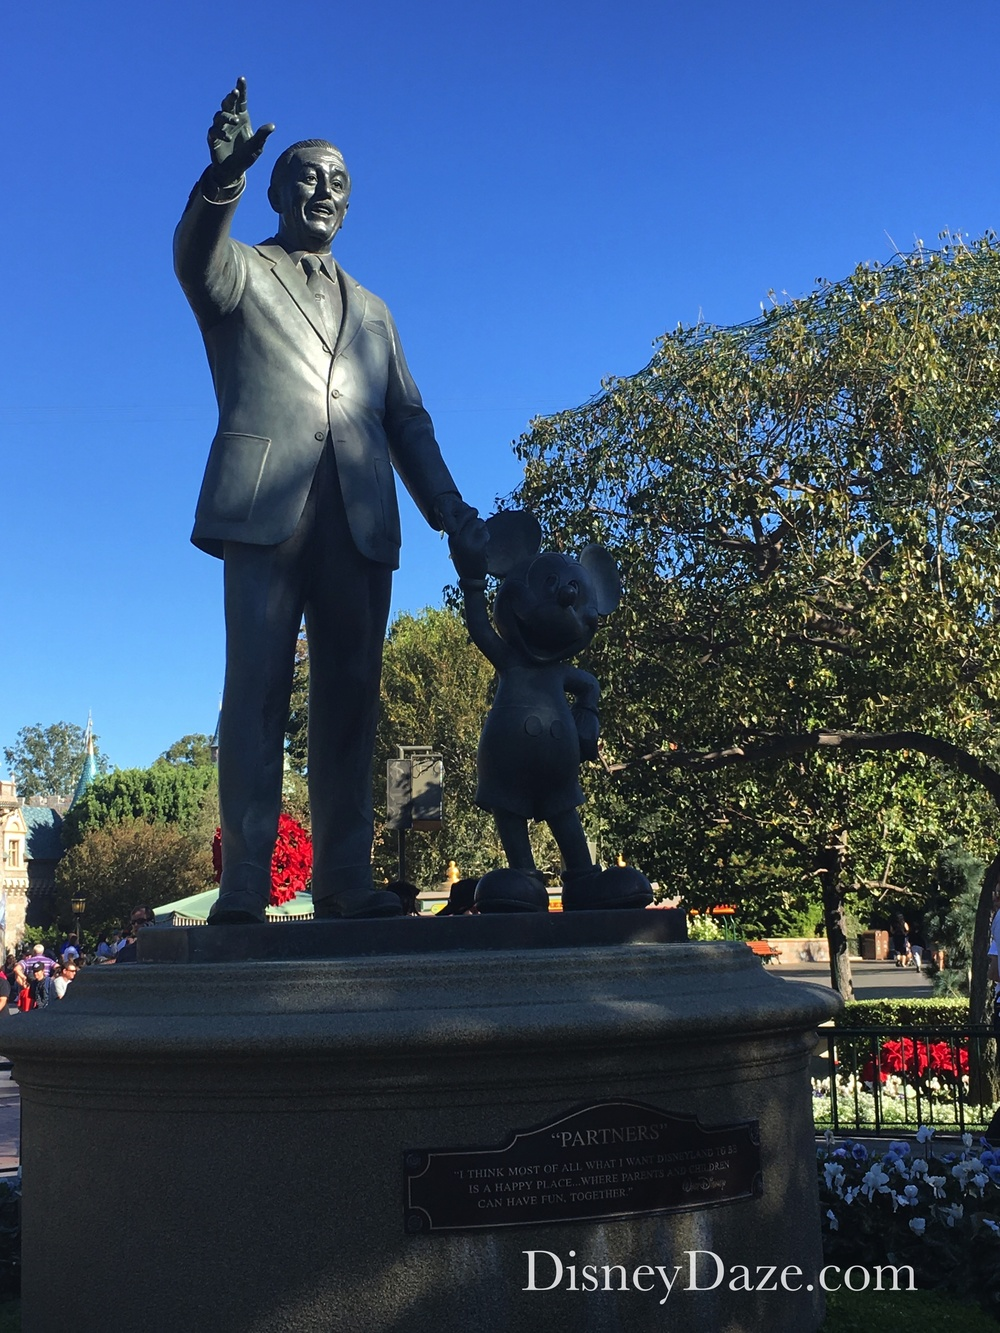 Partners Statue at Disneyland